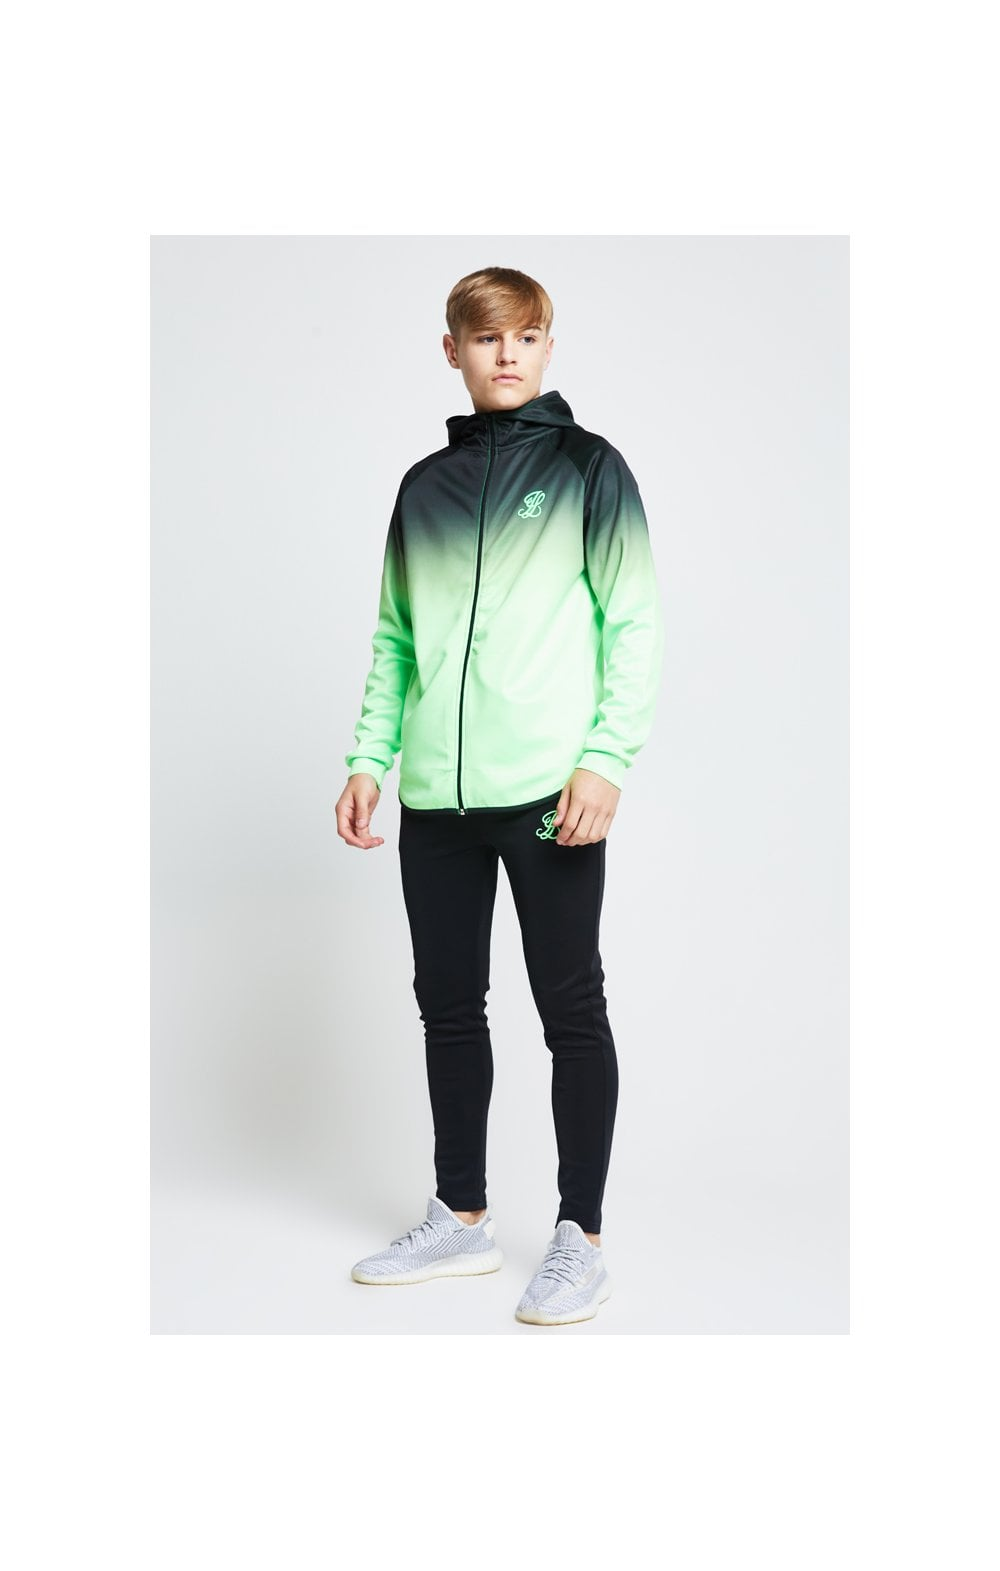 Illusive London Athlete Zip Through Hoodie - Black & Neon Green (2)